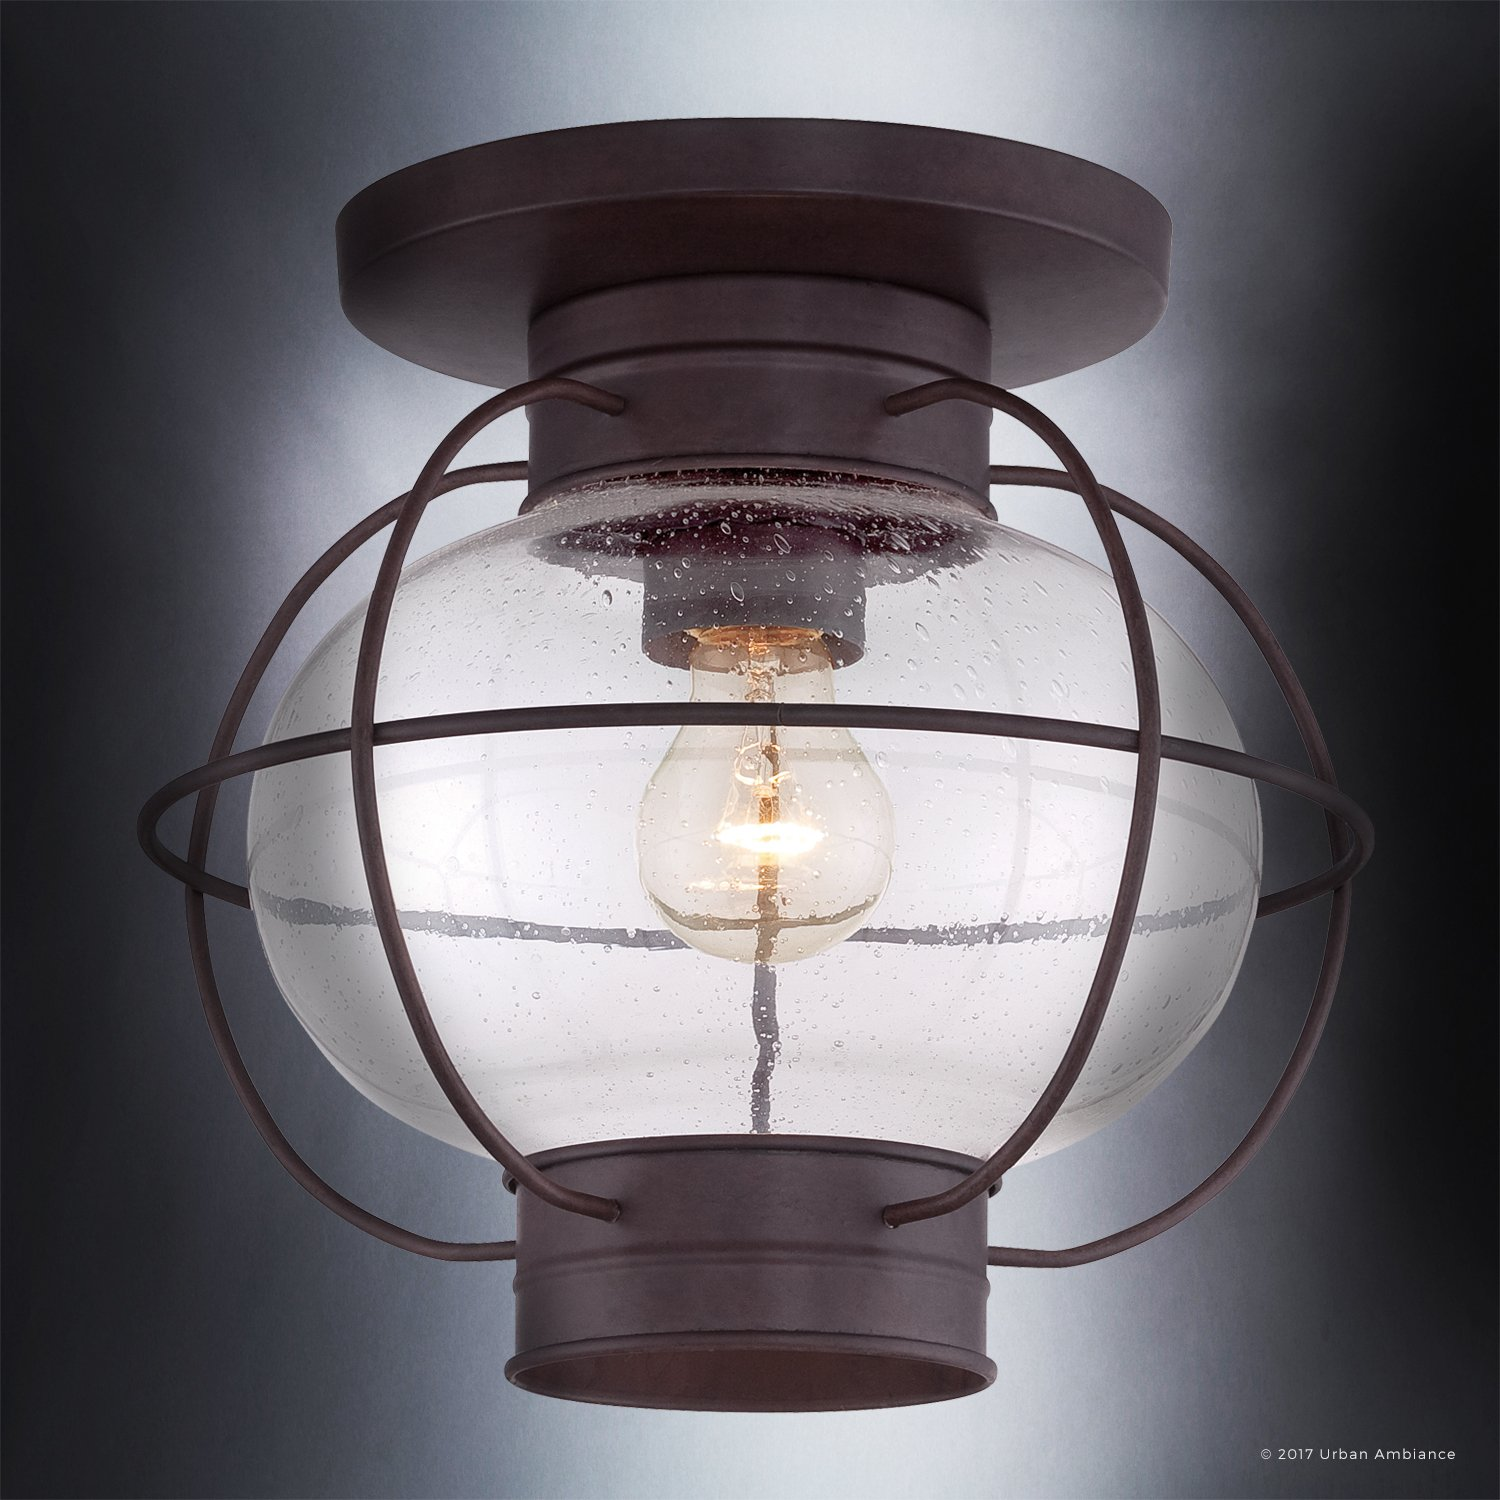 Luxury Nautical Outdoor Ceiling Light, Small Size: 10.5''H x 11.5''W, with Art Deco Style Elements, Cage Design, Bold Tawny Bronze Finish and Seeded Glass, UQL1033 by Urban Ambiance by Urban Ambiance (Image #3)